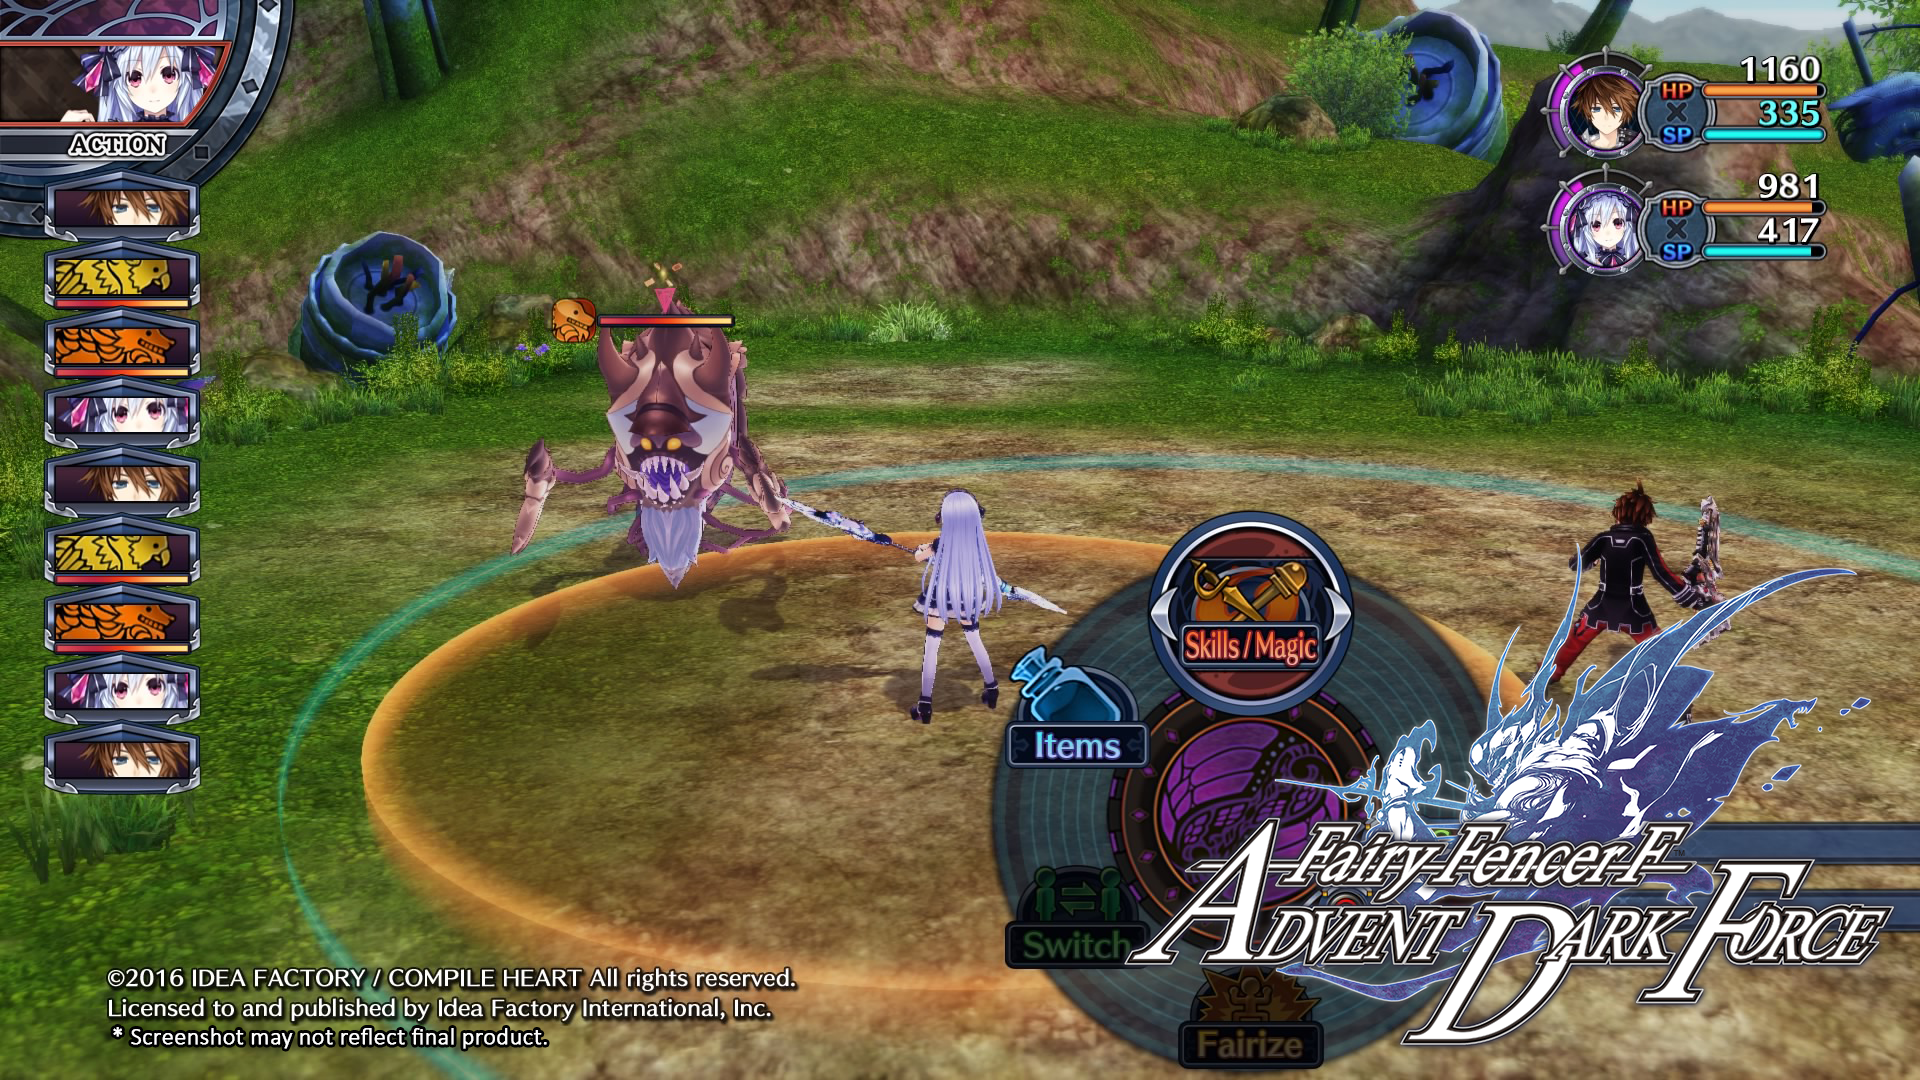 Fairy Fencer F Advent Dark Force Review The Hidden Levels